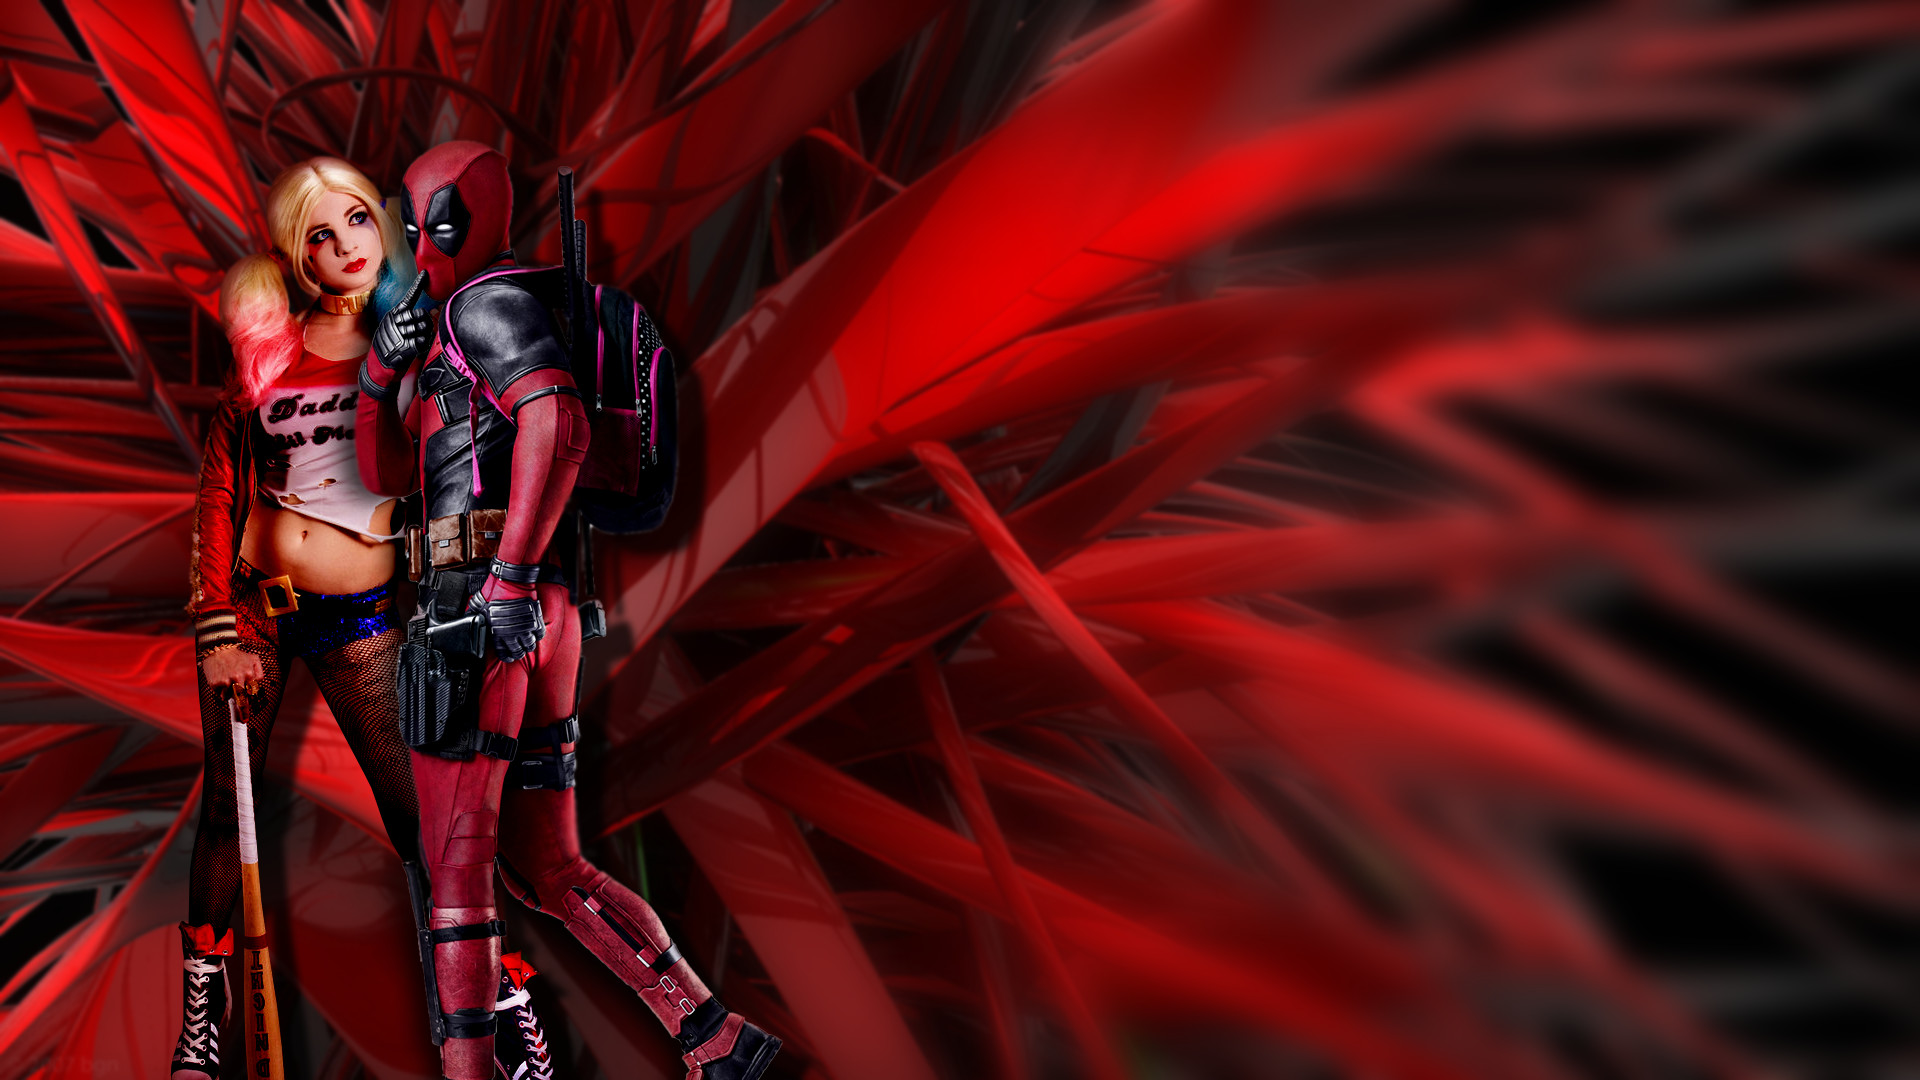 Harley and Deadpool by Boeingfreak Harley and Deadpool by Boeingfreak